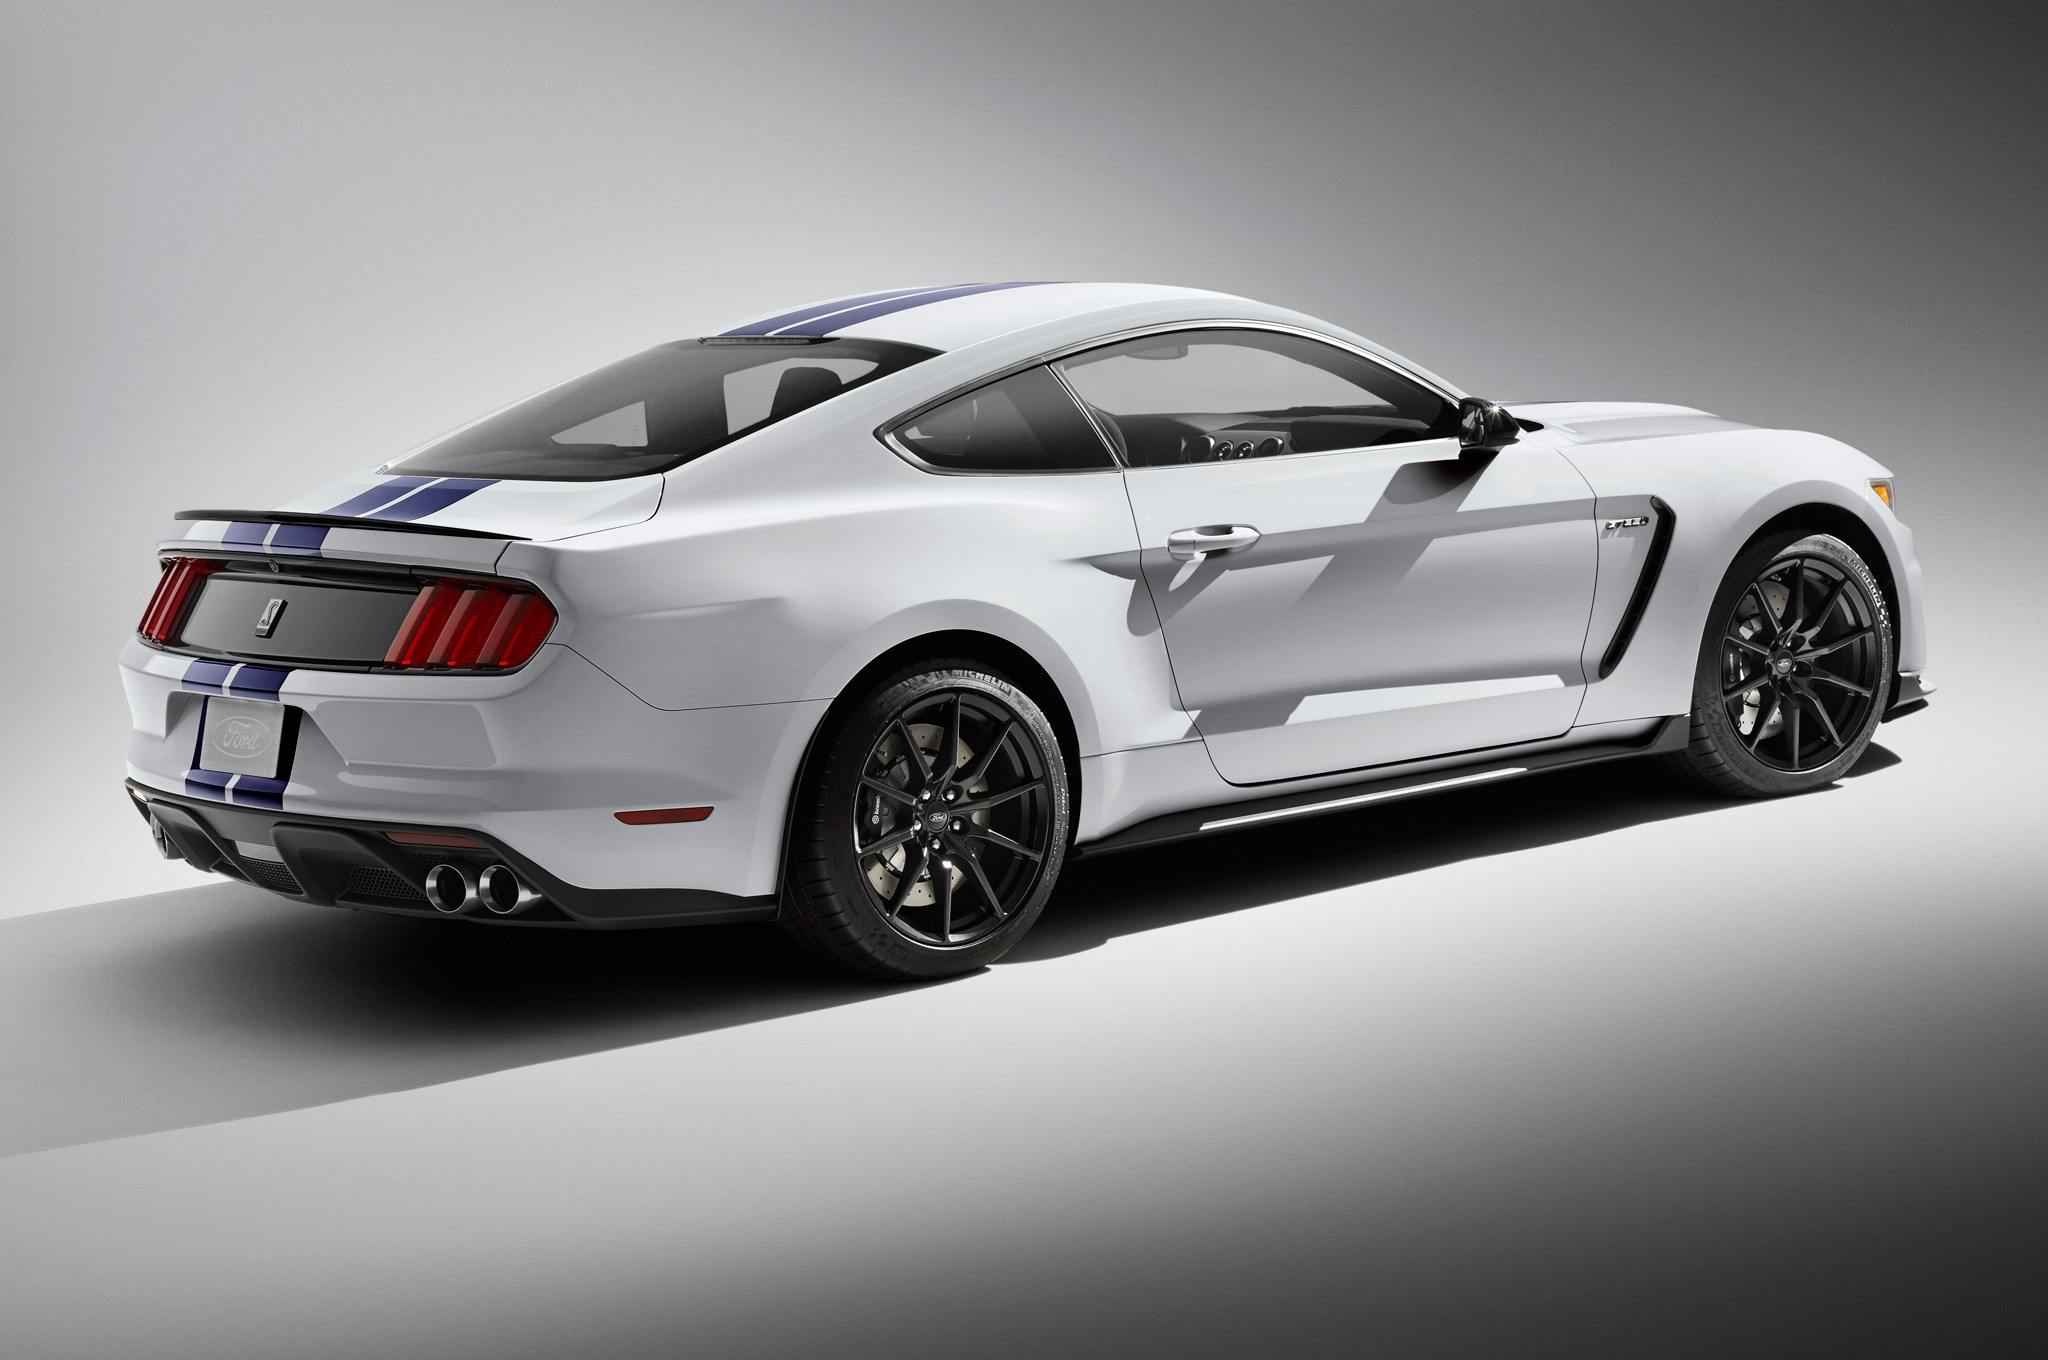 2016 ford shelby gt350 mustang - 2015 Ford Mustang White Convertible